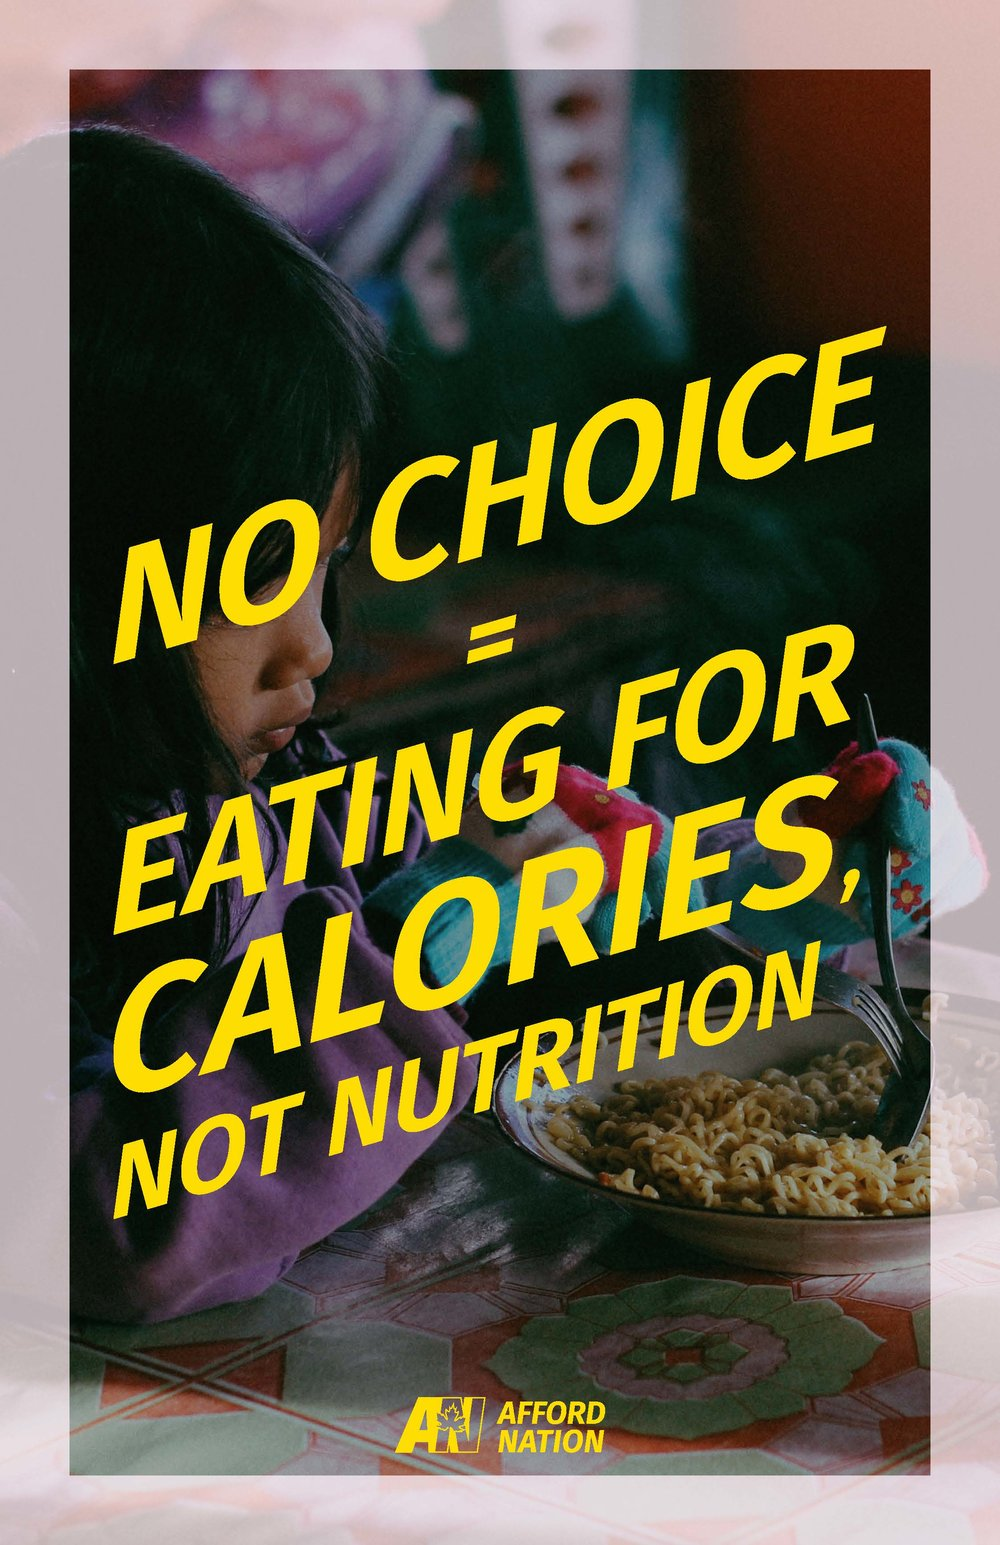 No choice = eating for calories, not nutrition